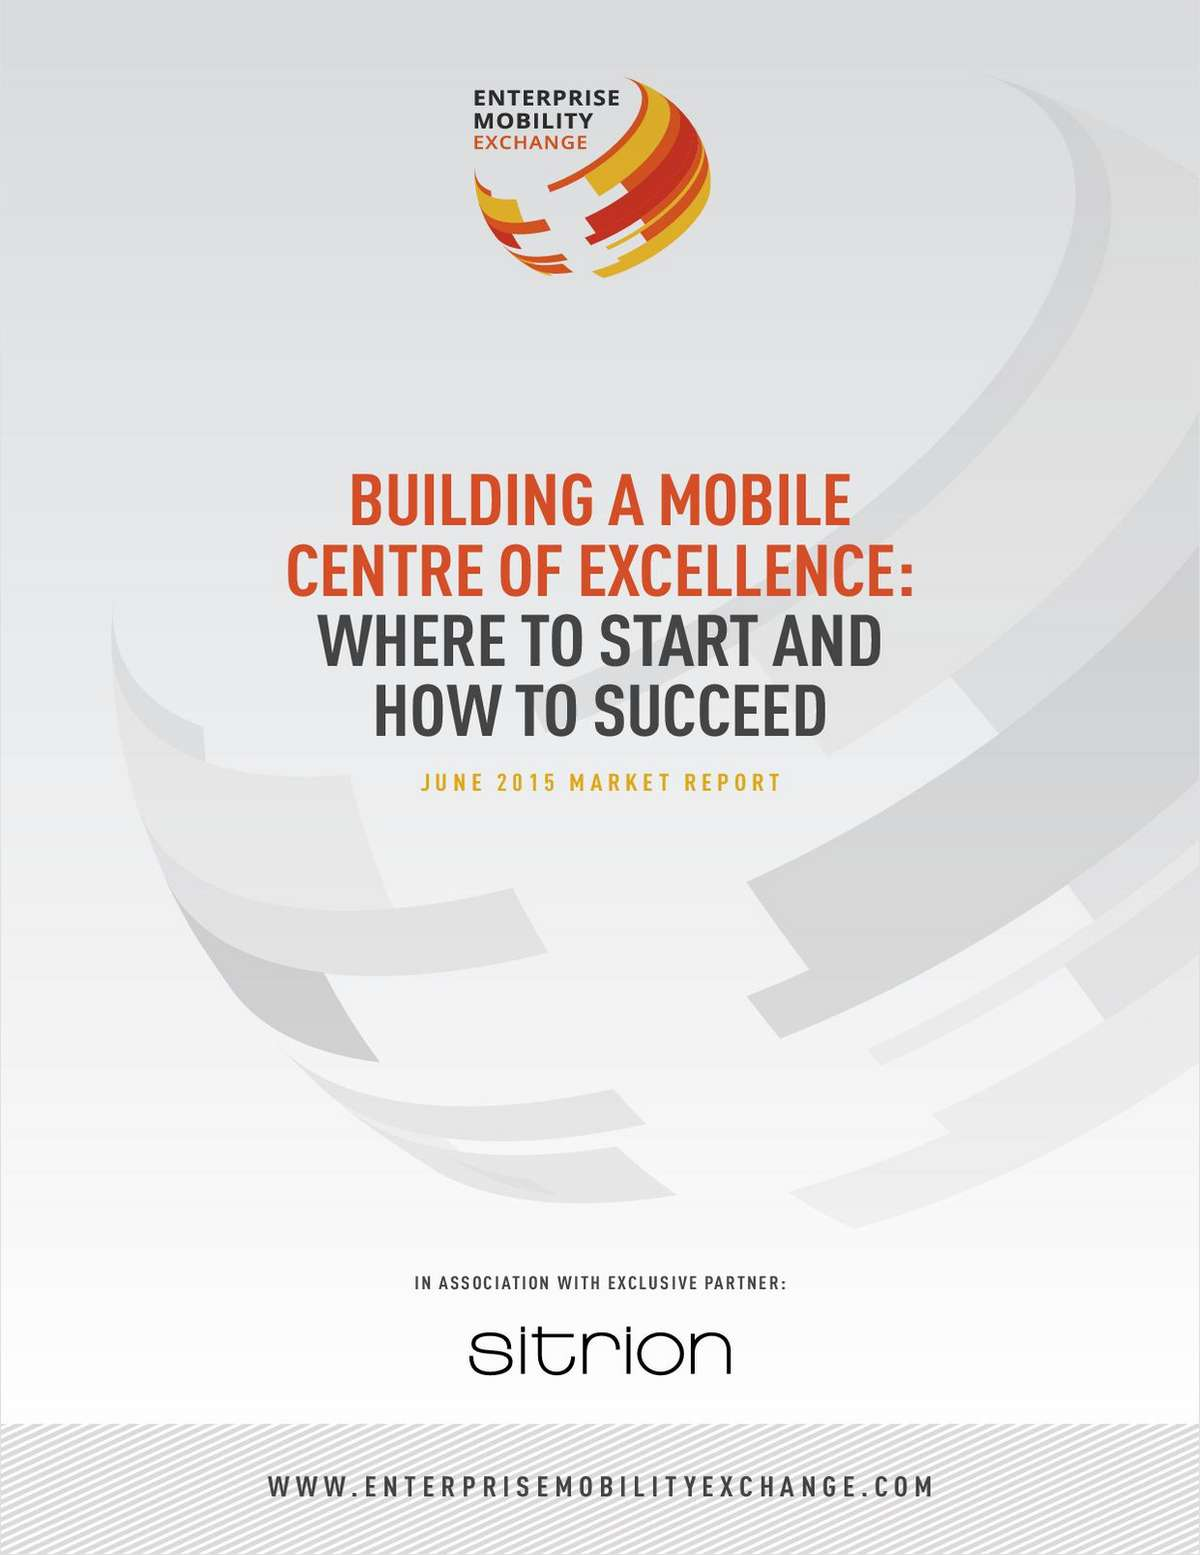 Building a Mobile Centre of Excellence: Where to Start and How to Succeed